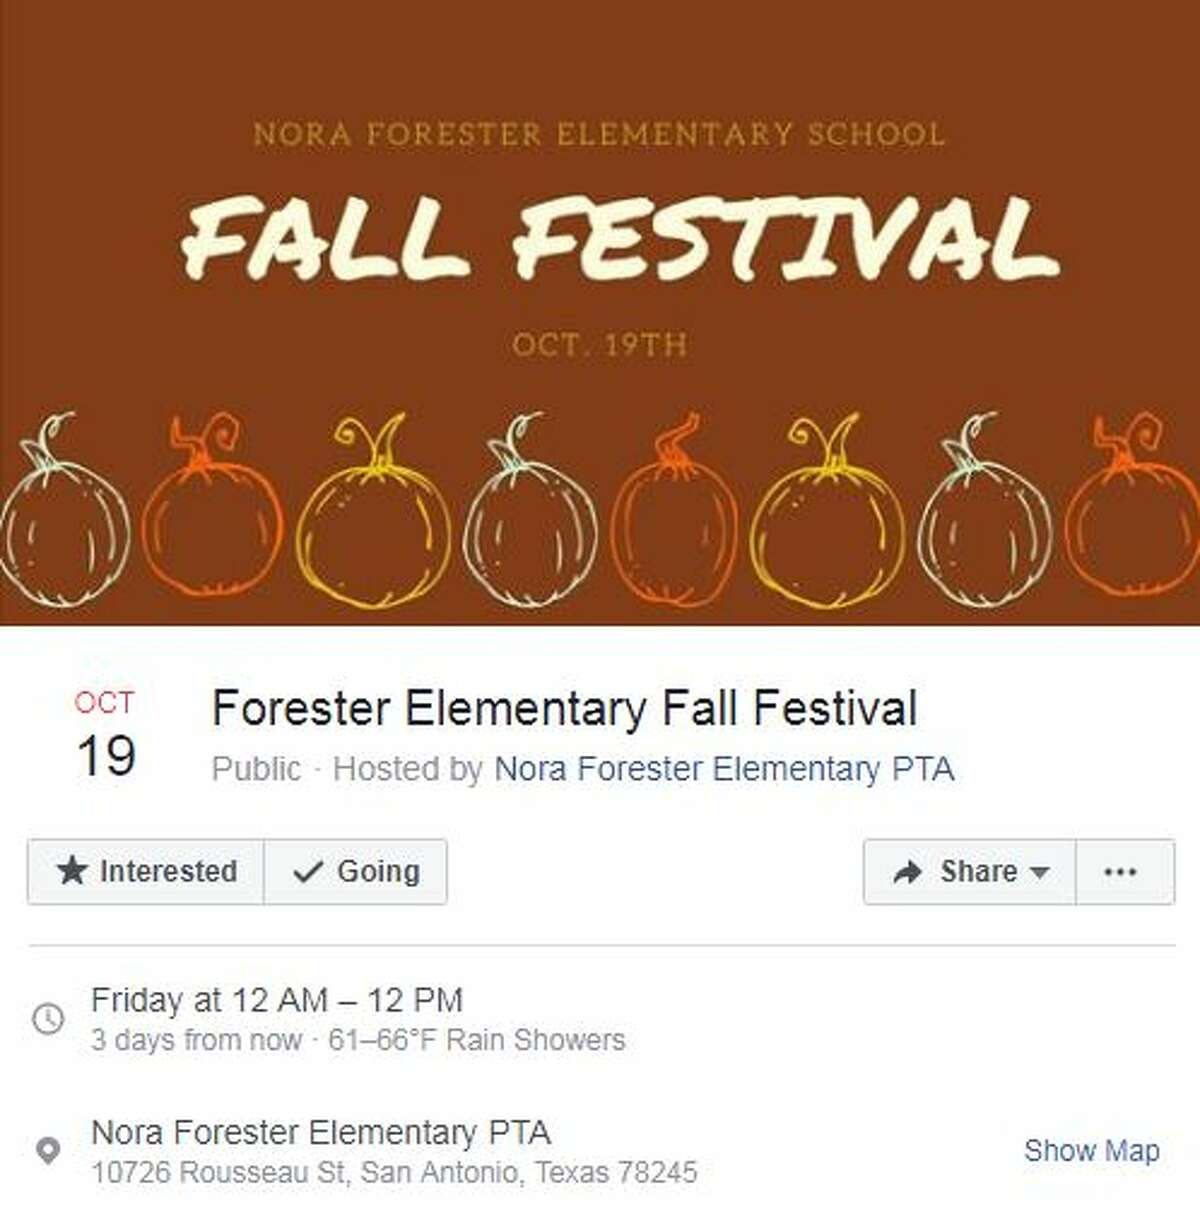 Forester Elementary Fall Festival Oct. 19, 12 a.m. - 12 p.m. Nora Forester Elementary PTA, 10726 Rousseau Street